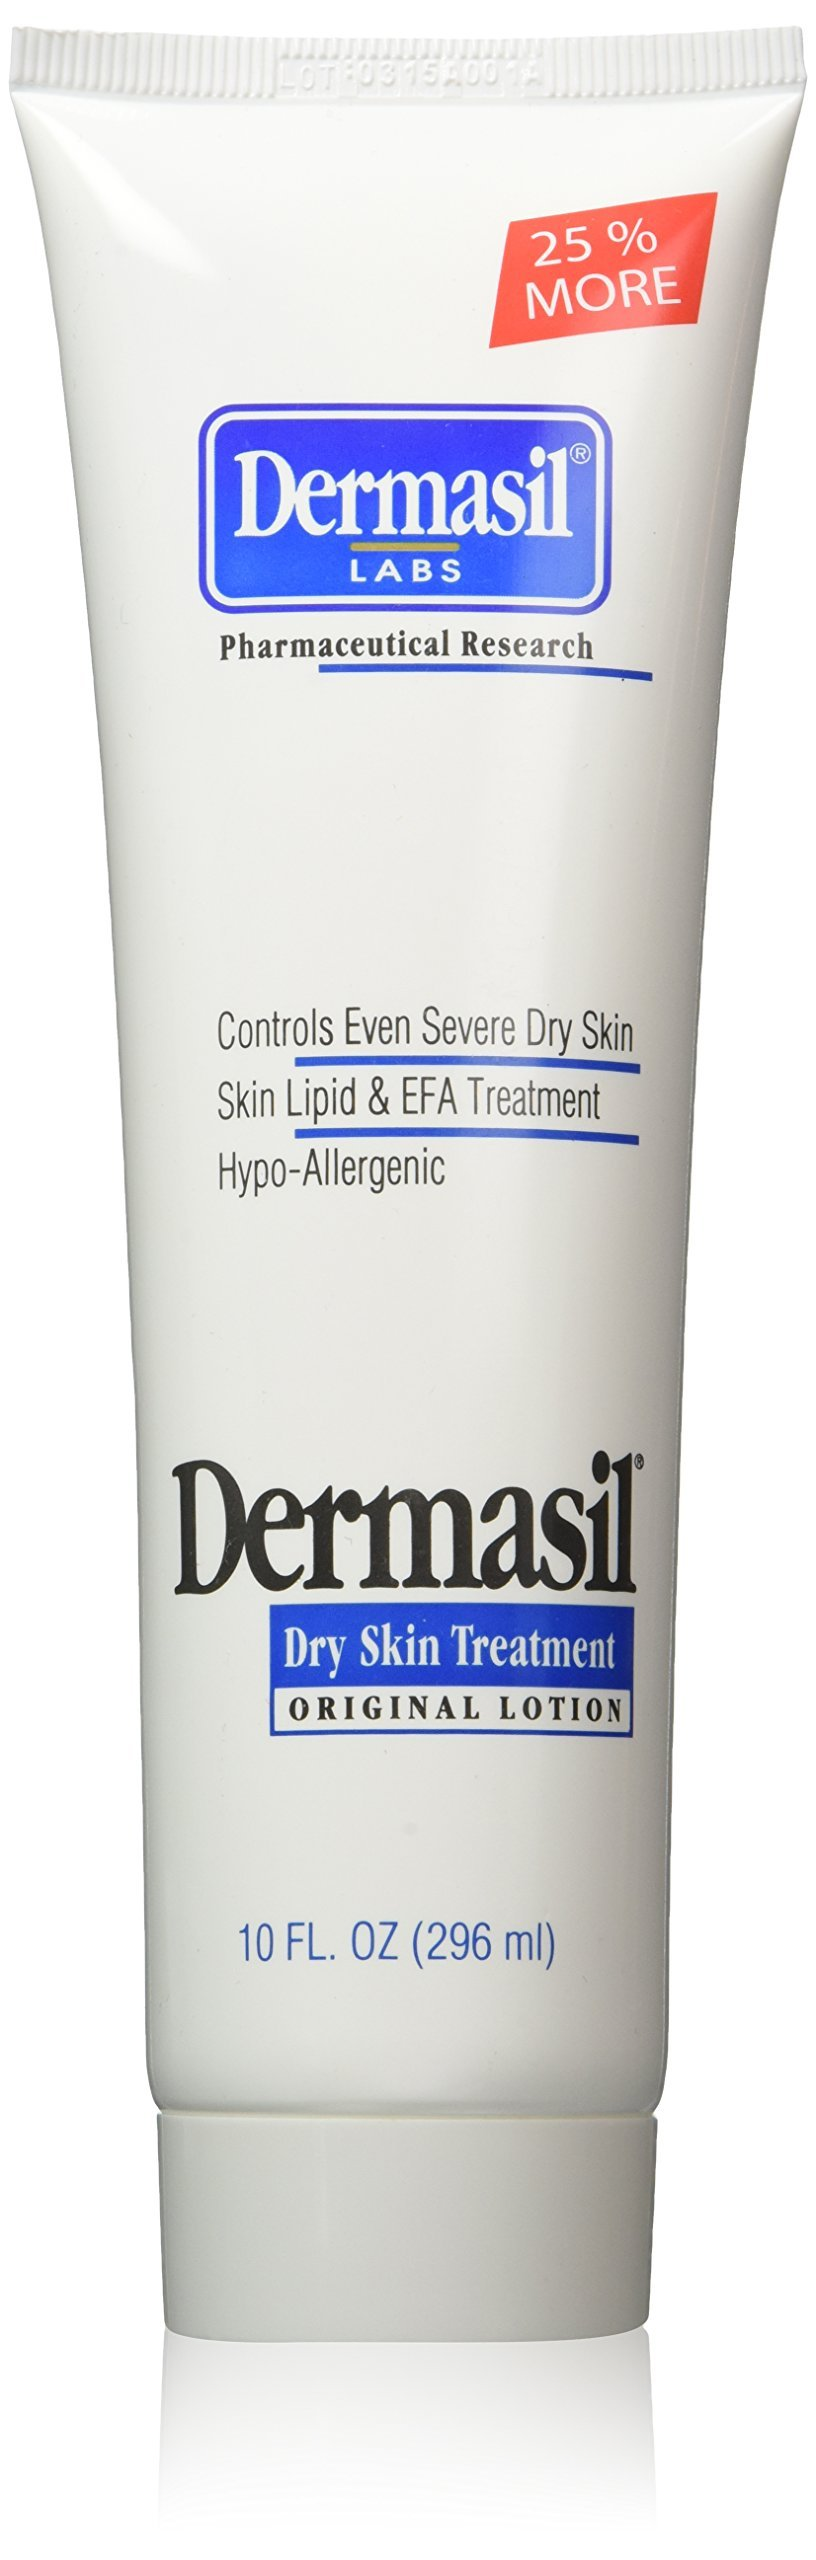 Dermasil Labs Dry Skin Treatment, Original Formula, 10 oz Tube, 3 Piece